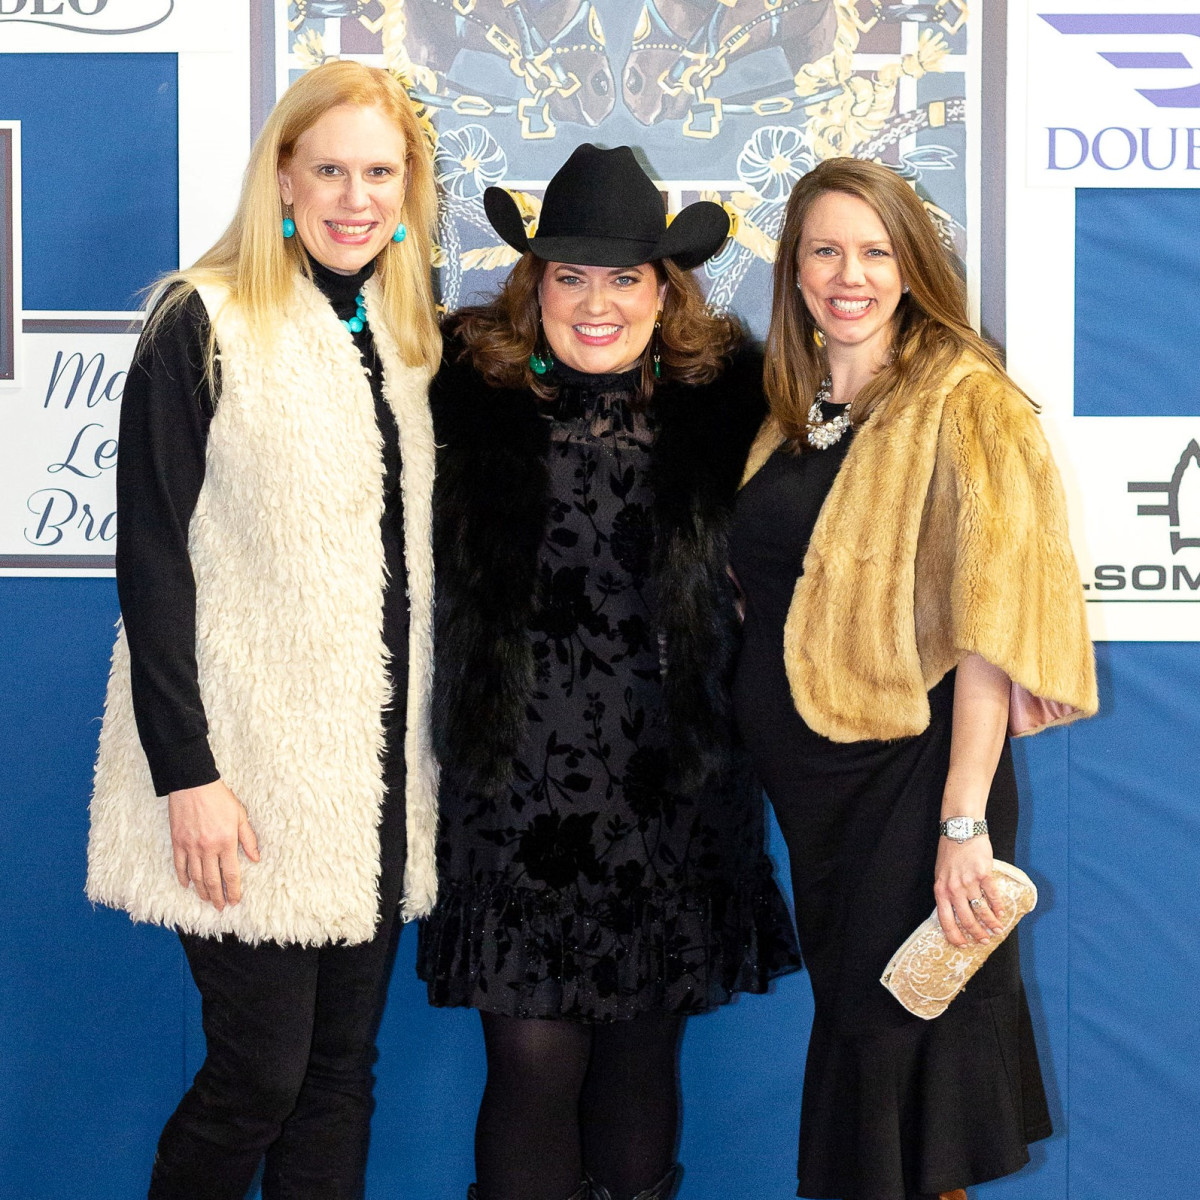 Kathy Harrelson, JLFW President Ashley Freer, Chris Curtis